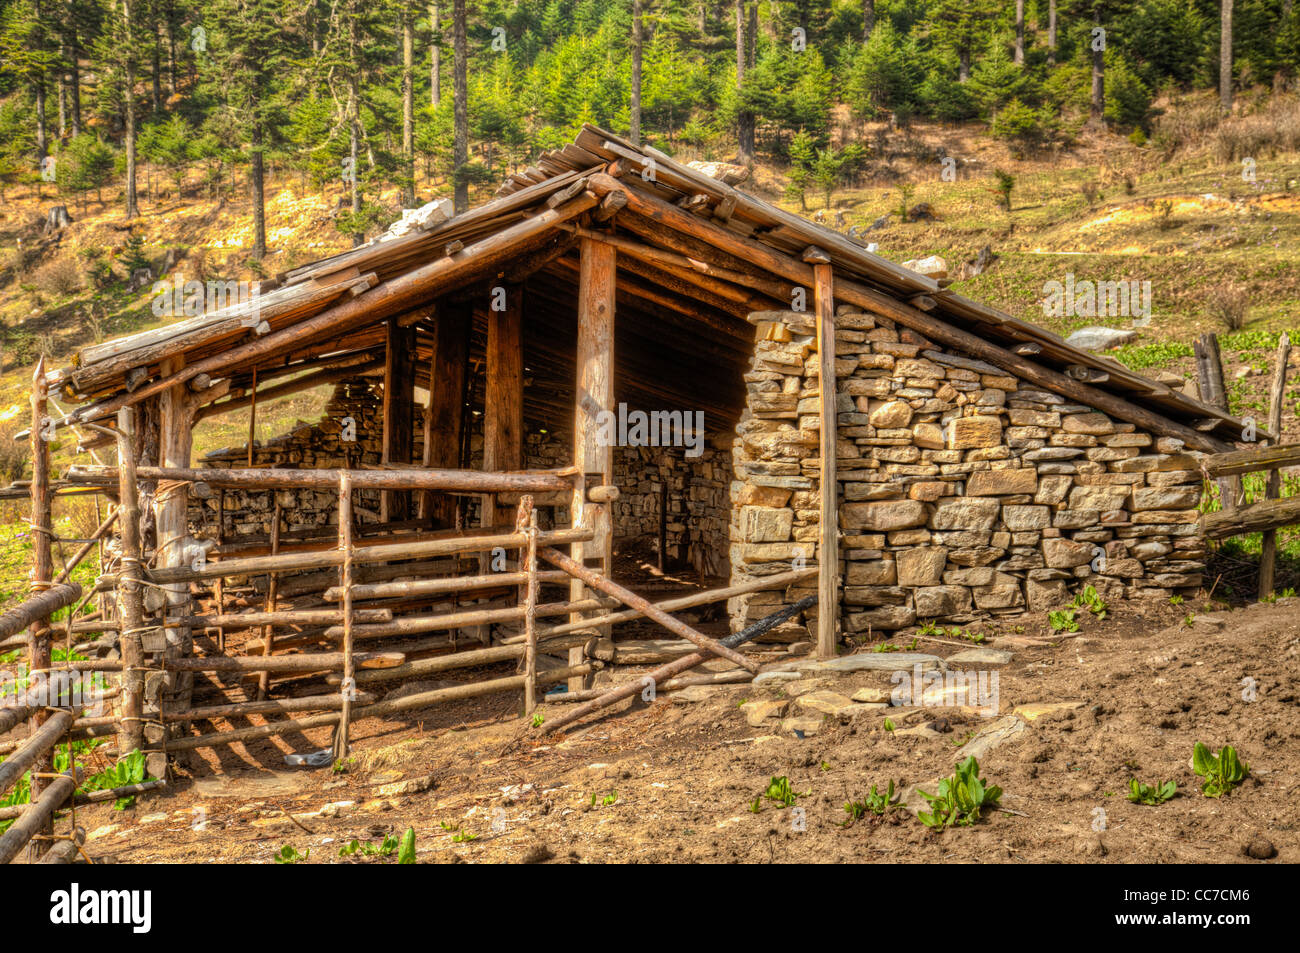 Home of a yak herder in the mountains of Bhutan - Stock Image